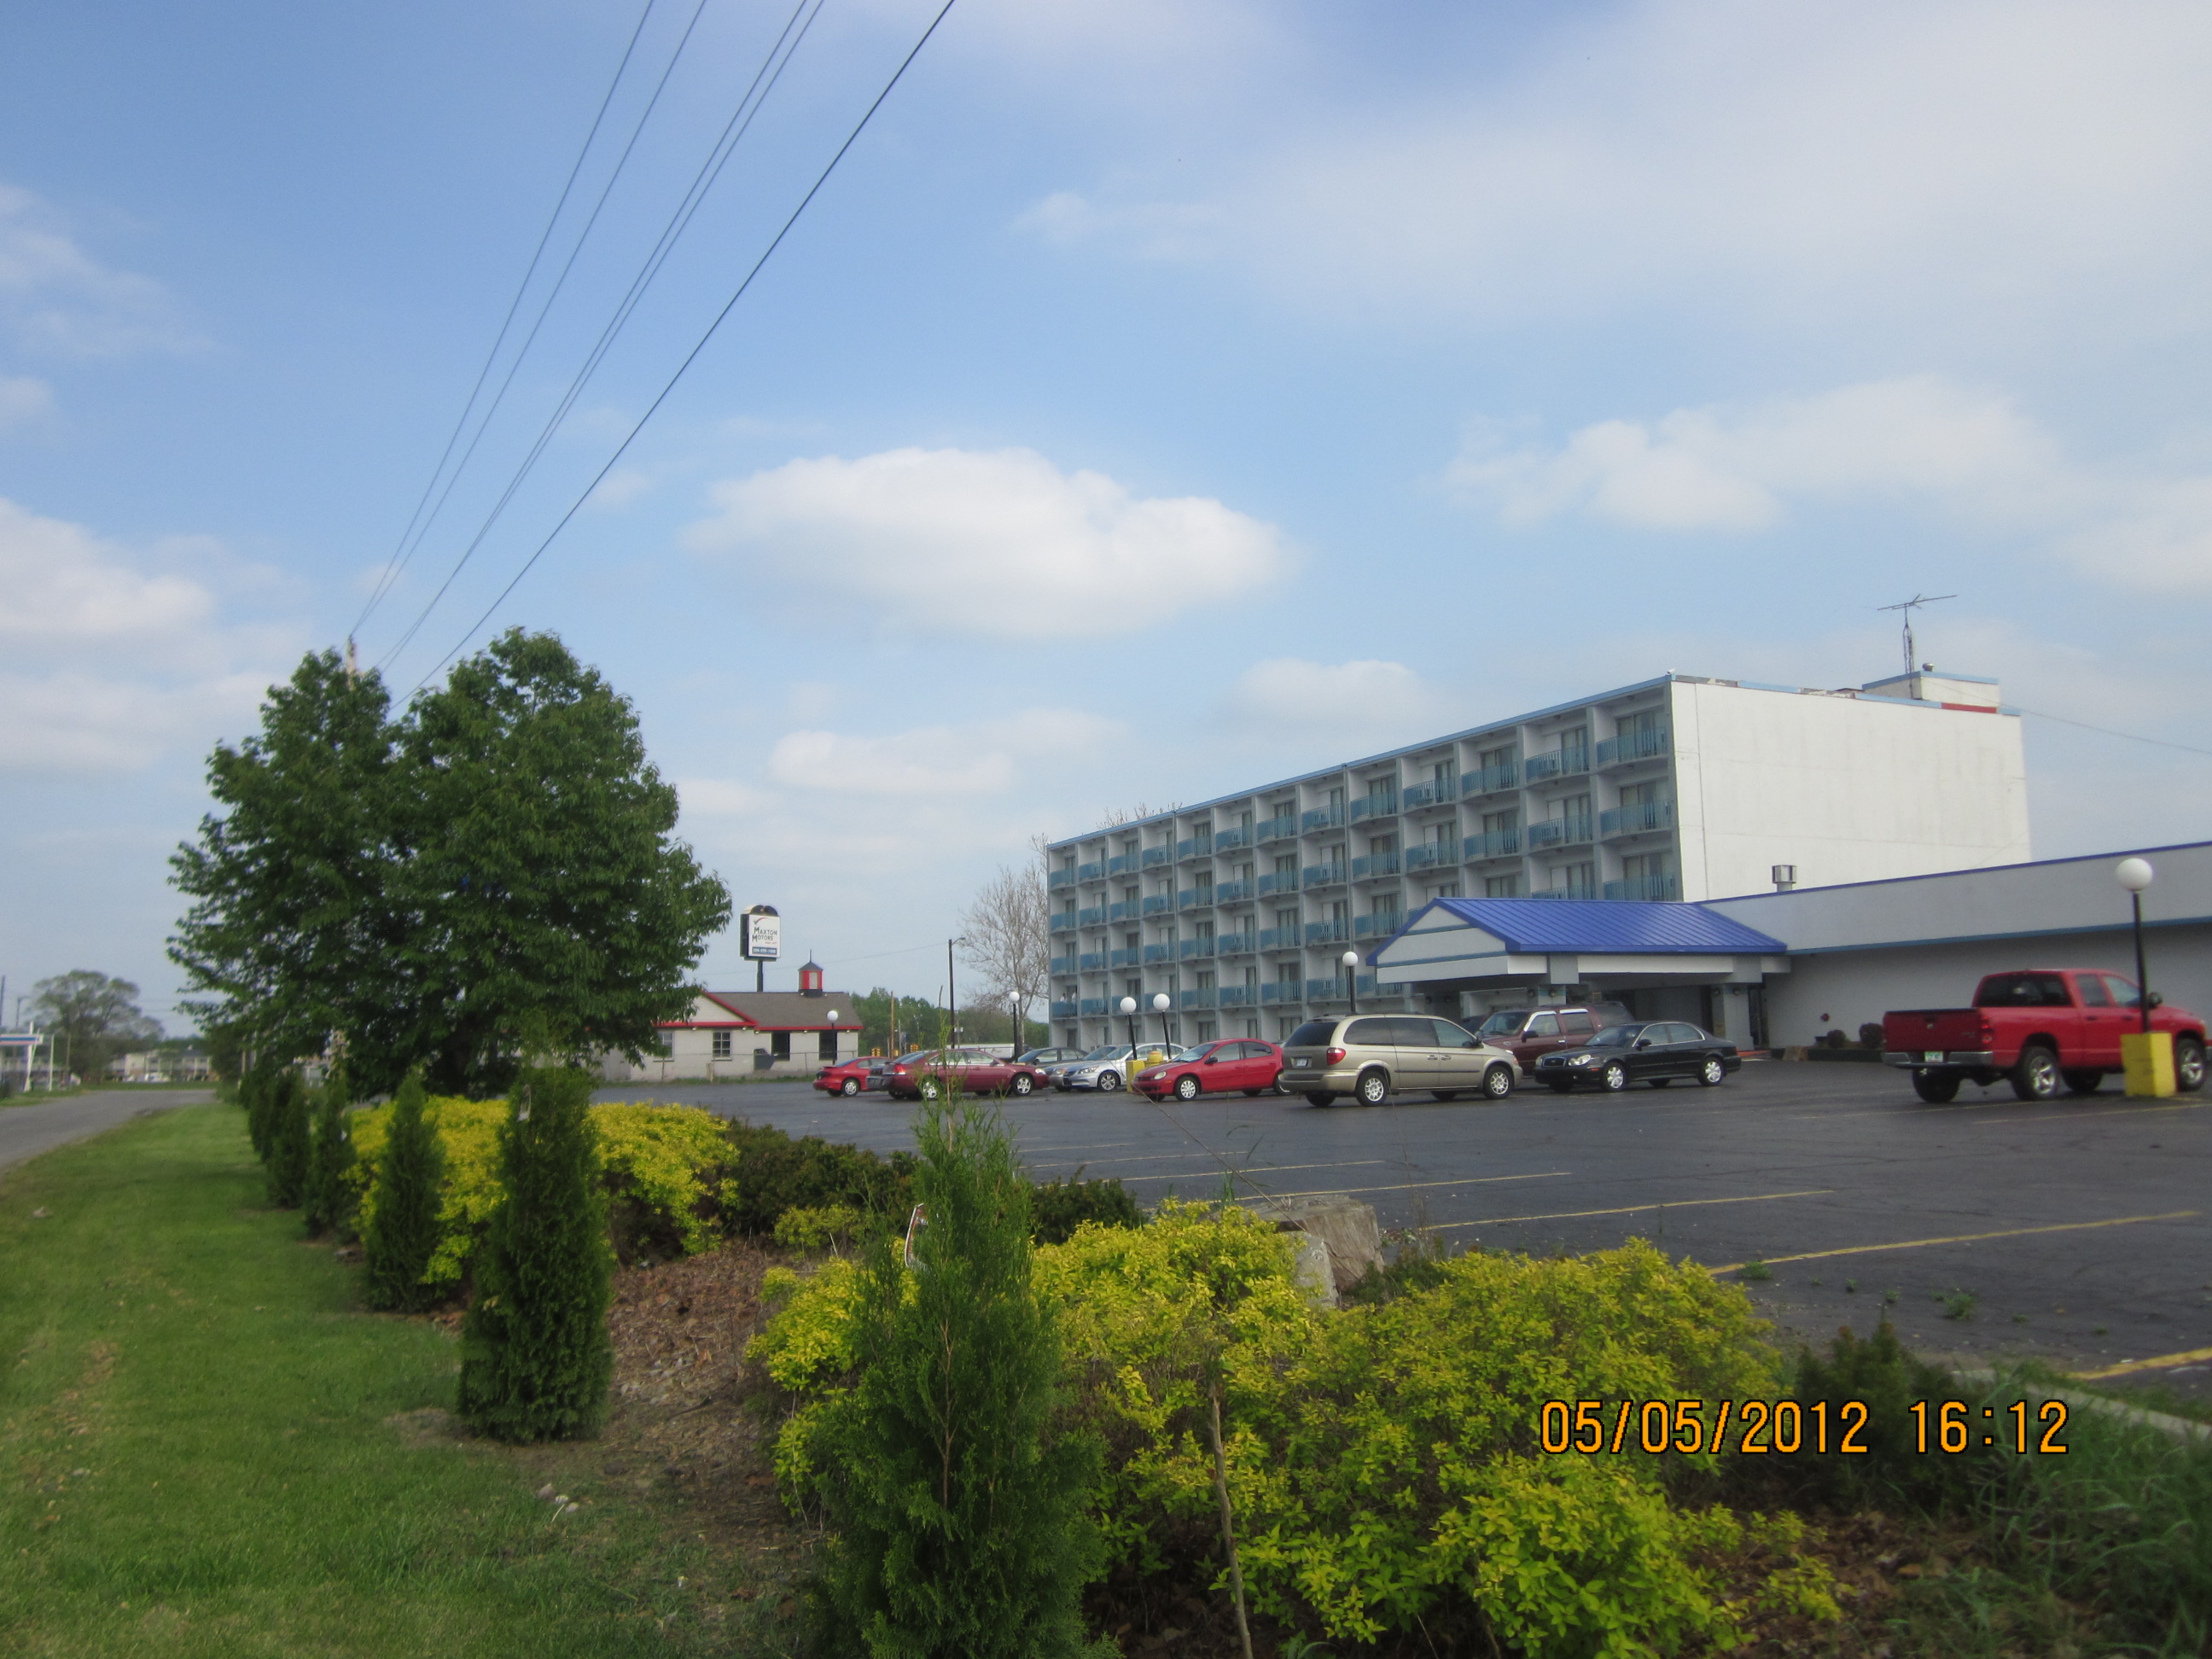 Americas Best Value Inn- Benton Harbor